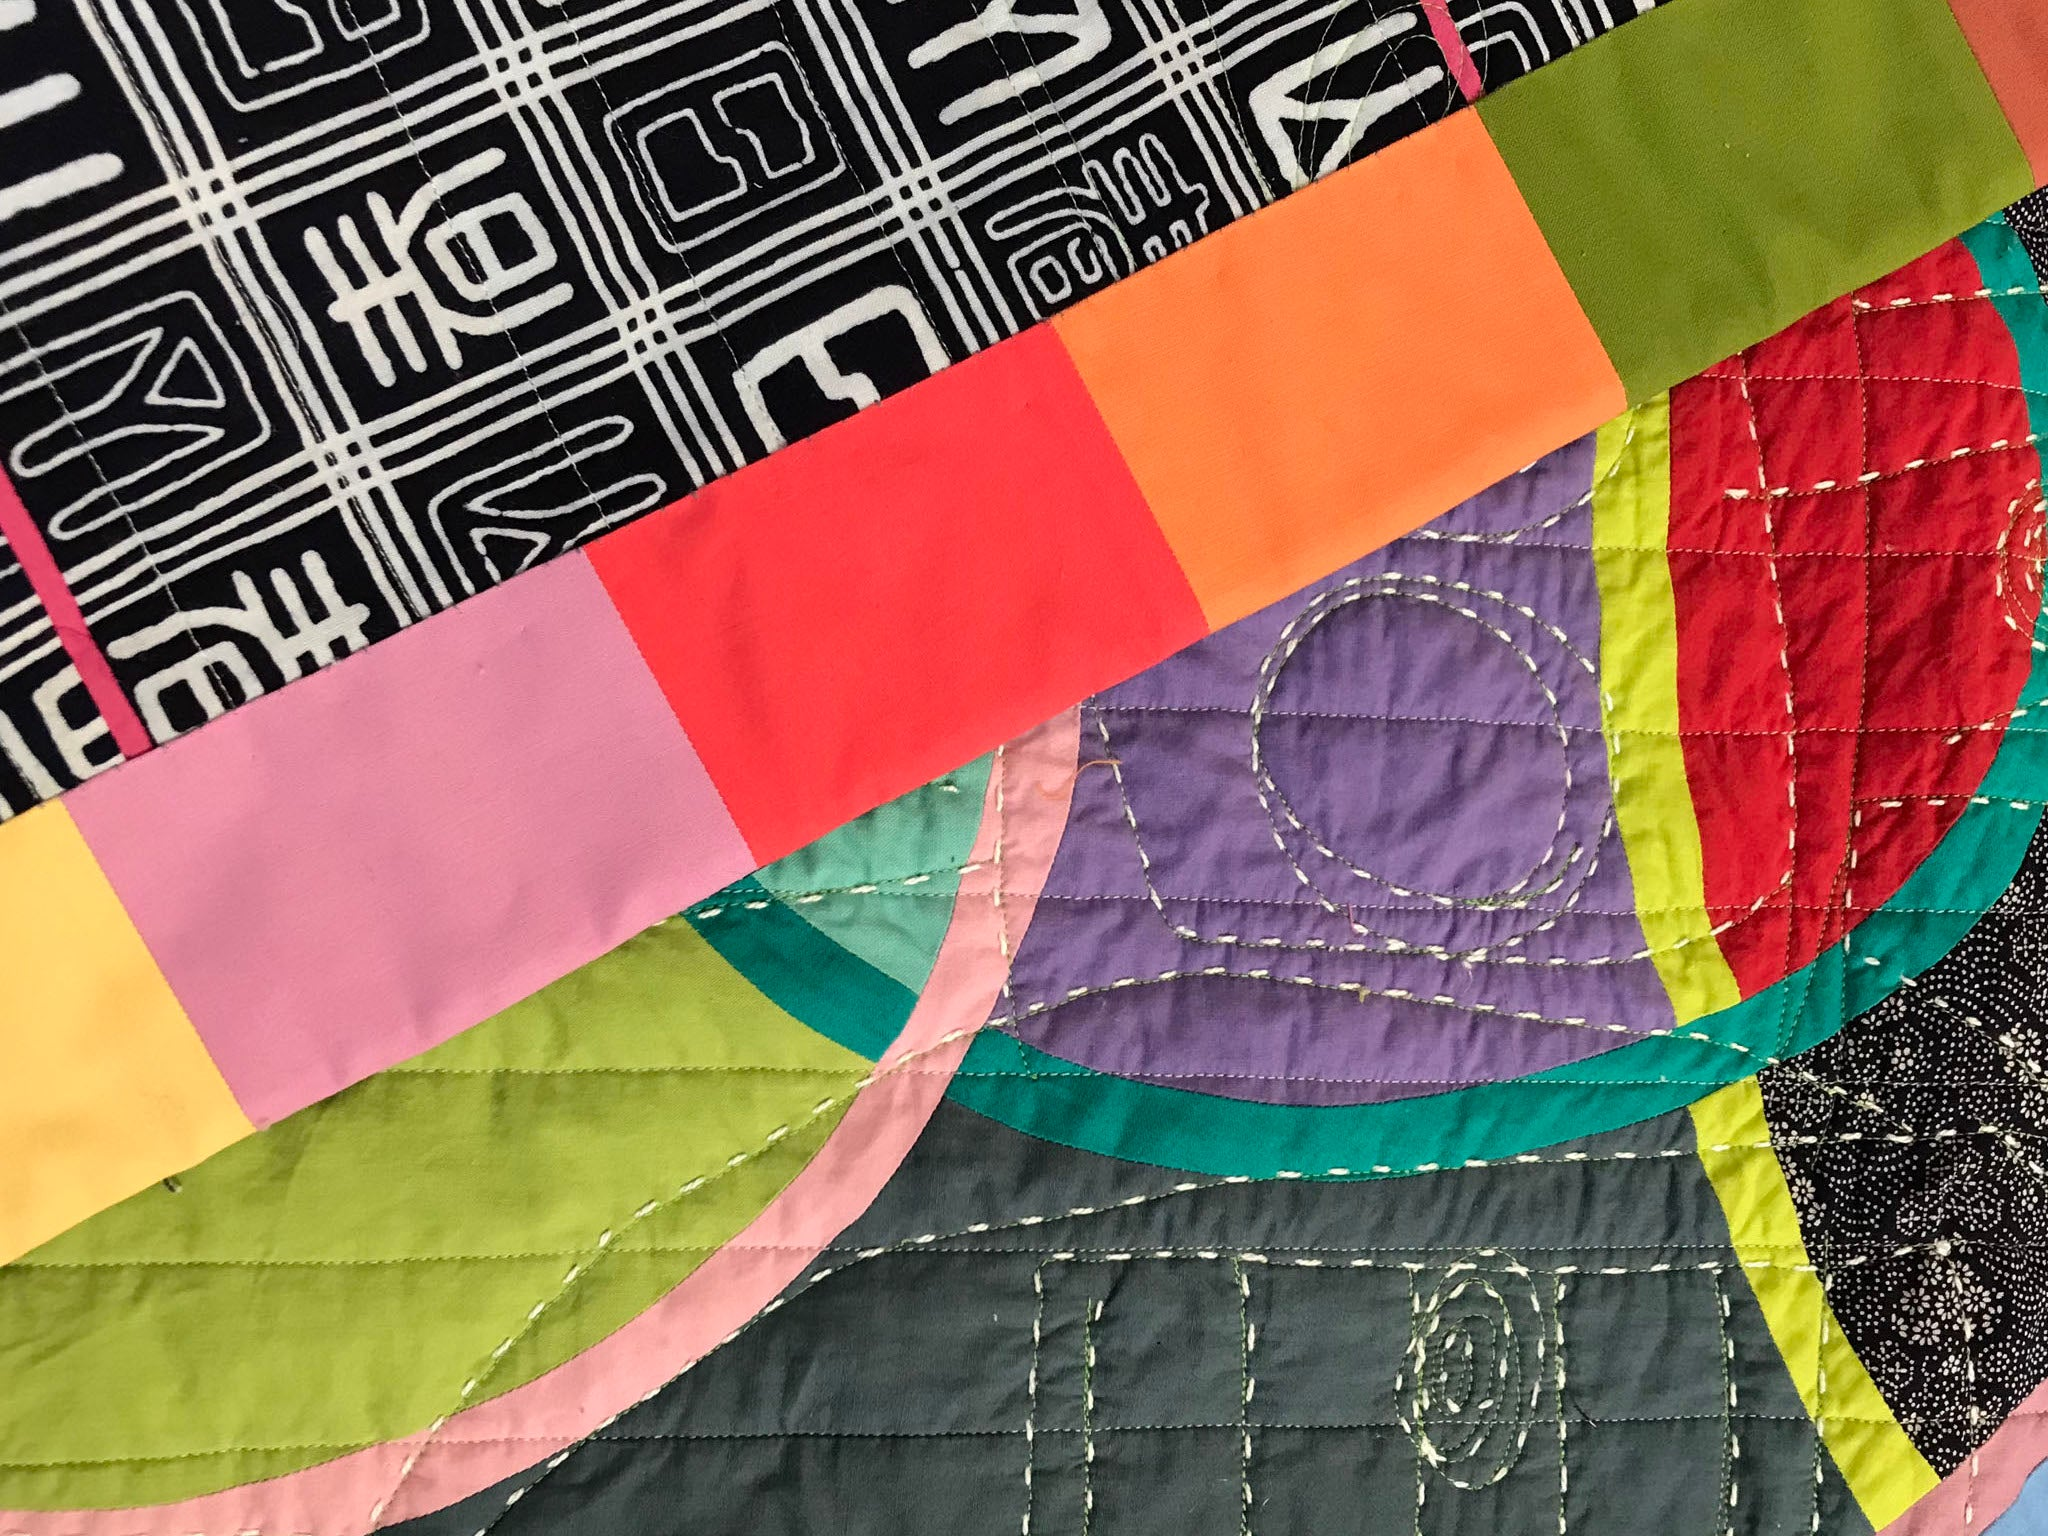 Watermelon From Mars, a quilt by Patricia Belyea